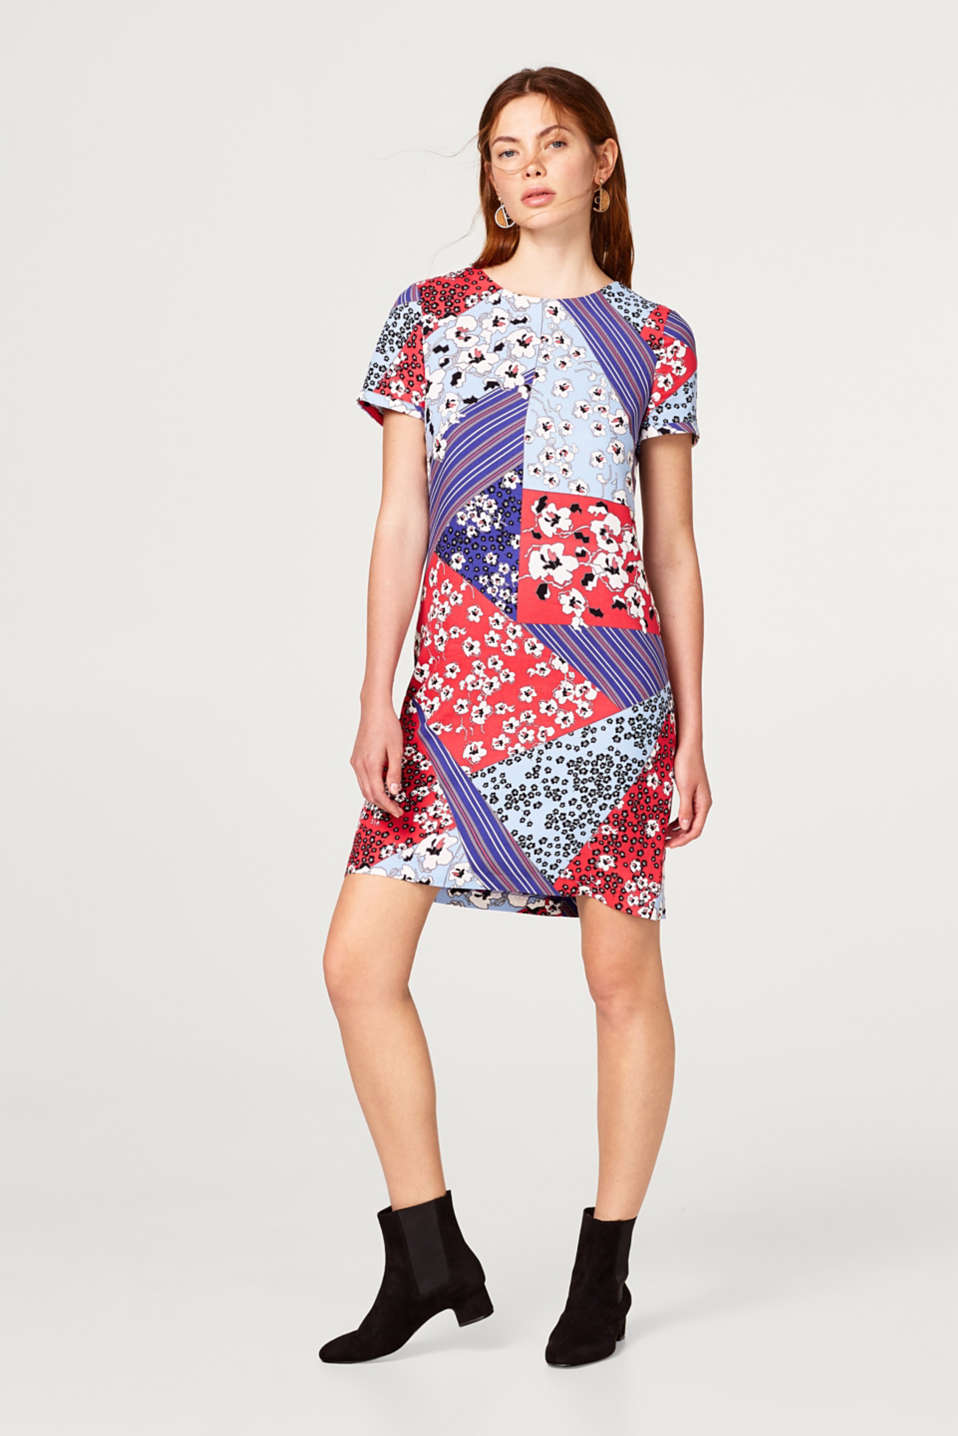 Patchwork-look, print dress